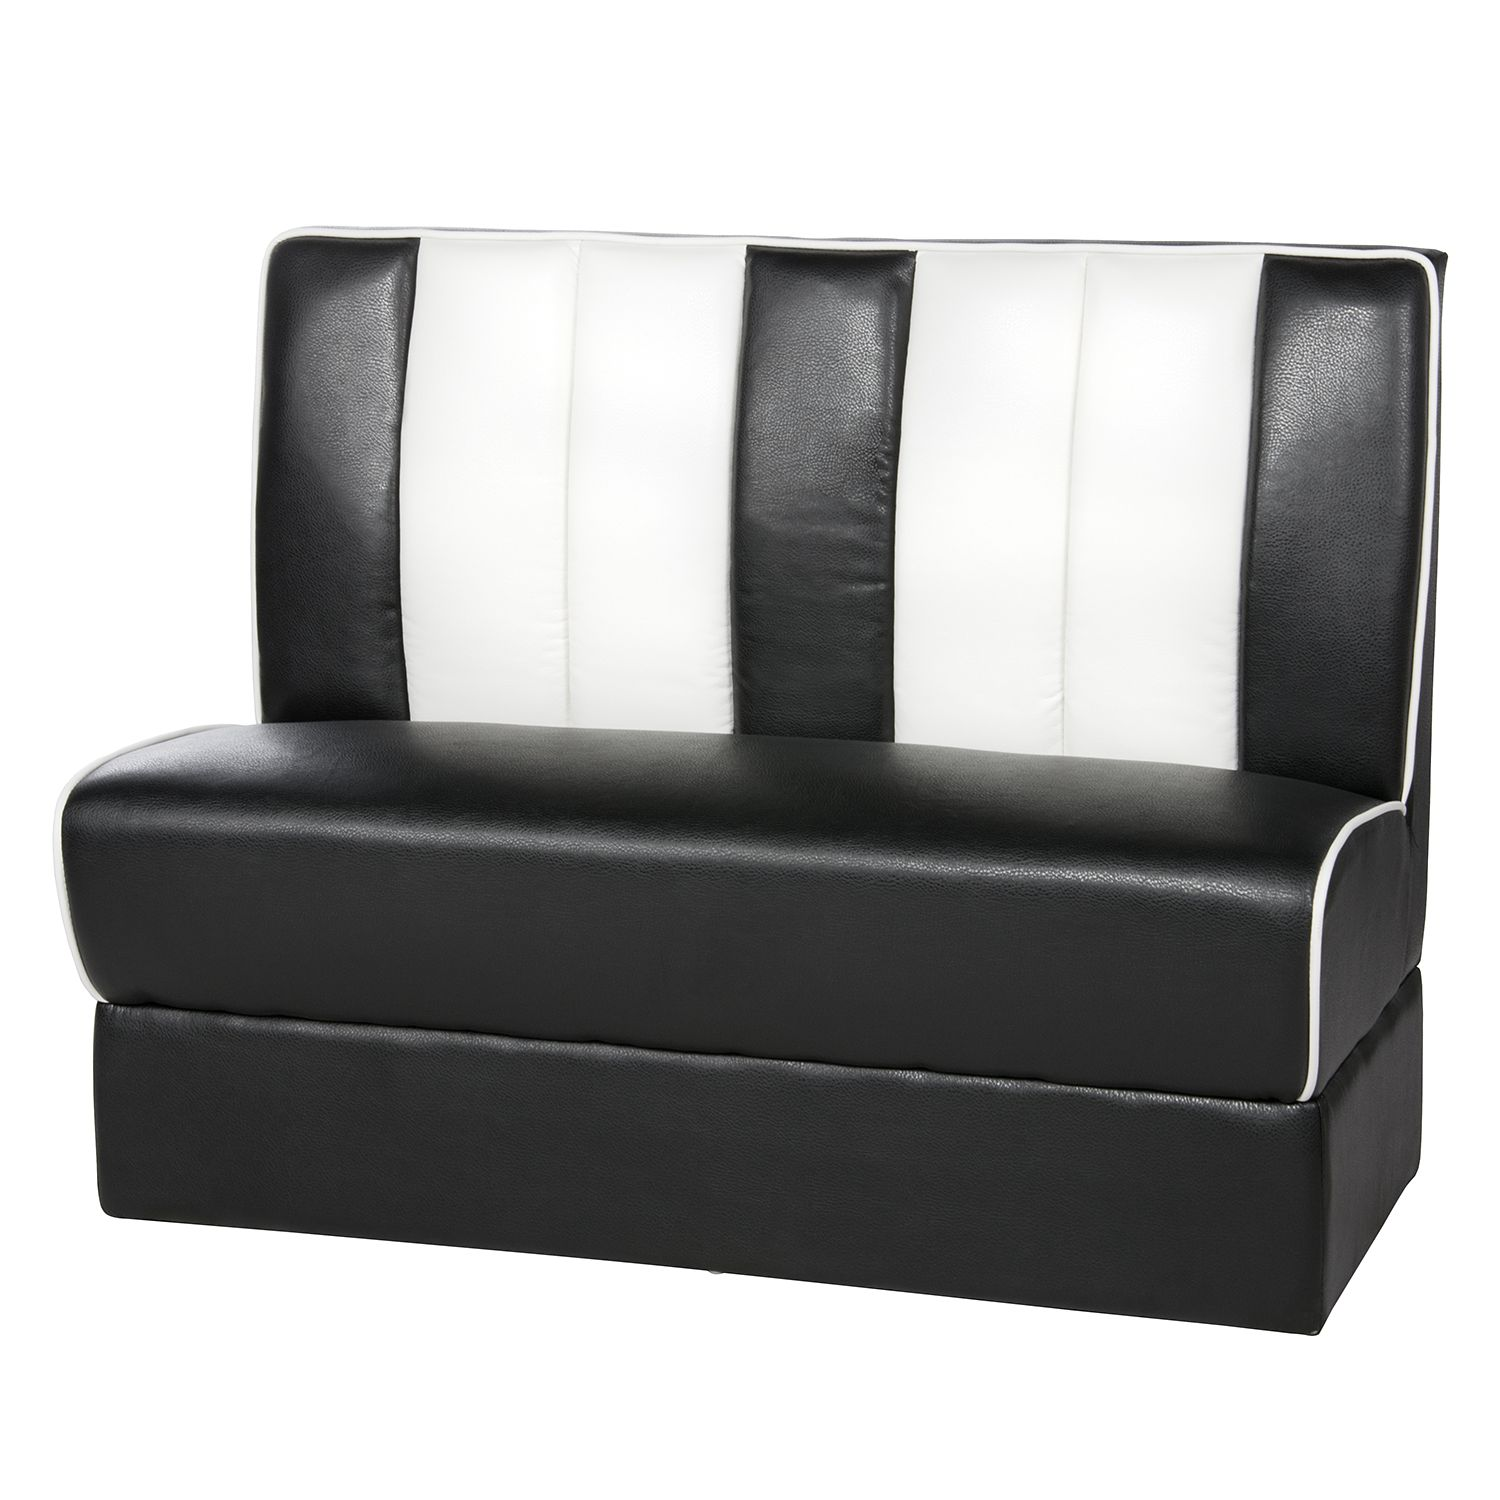 banc elvis ii noir blanc mooved par mooved chez home24 fr. Black Bedroom Furniture Sets. Home Design Ideas